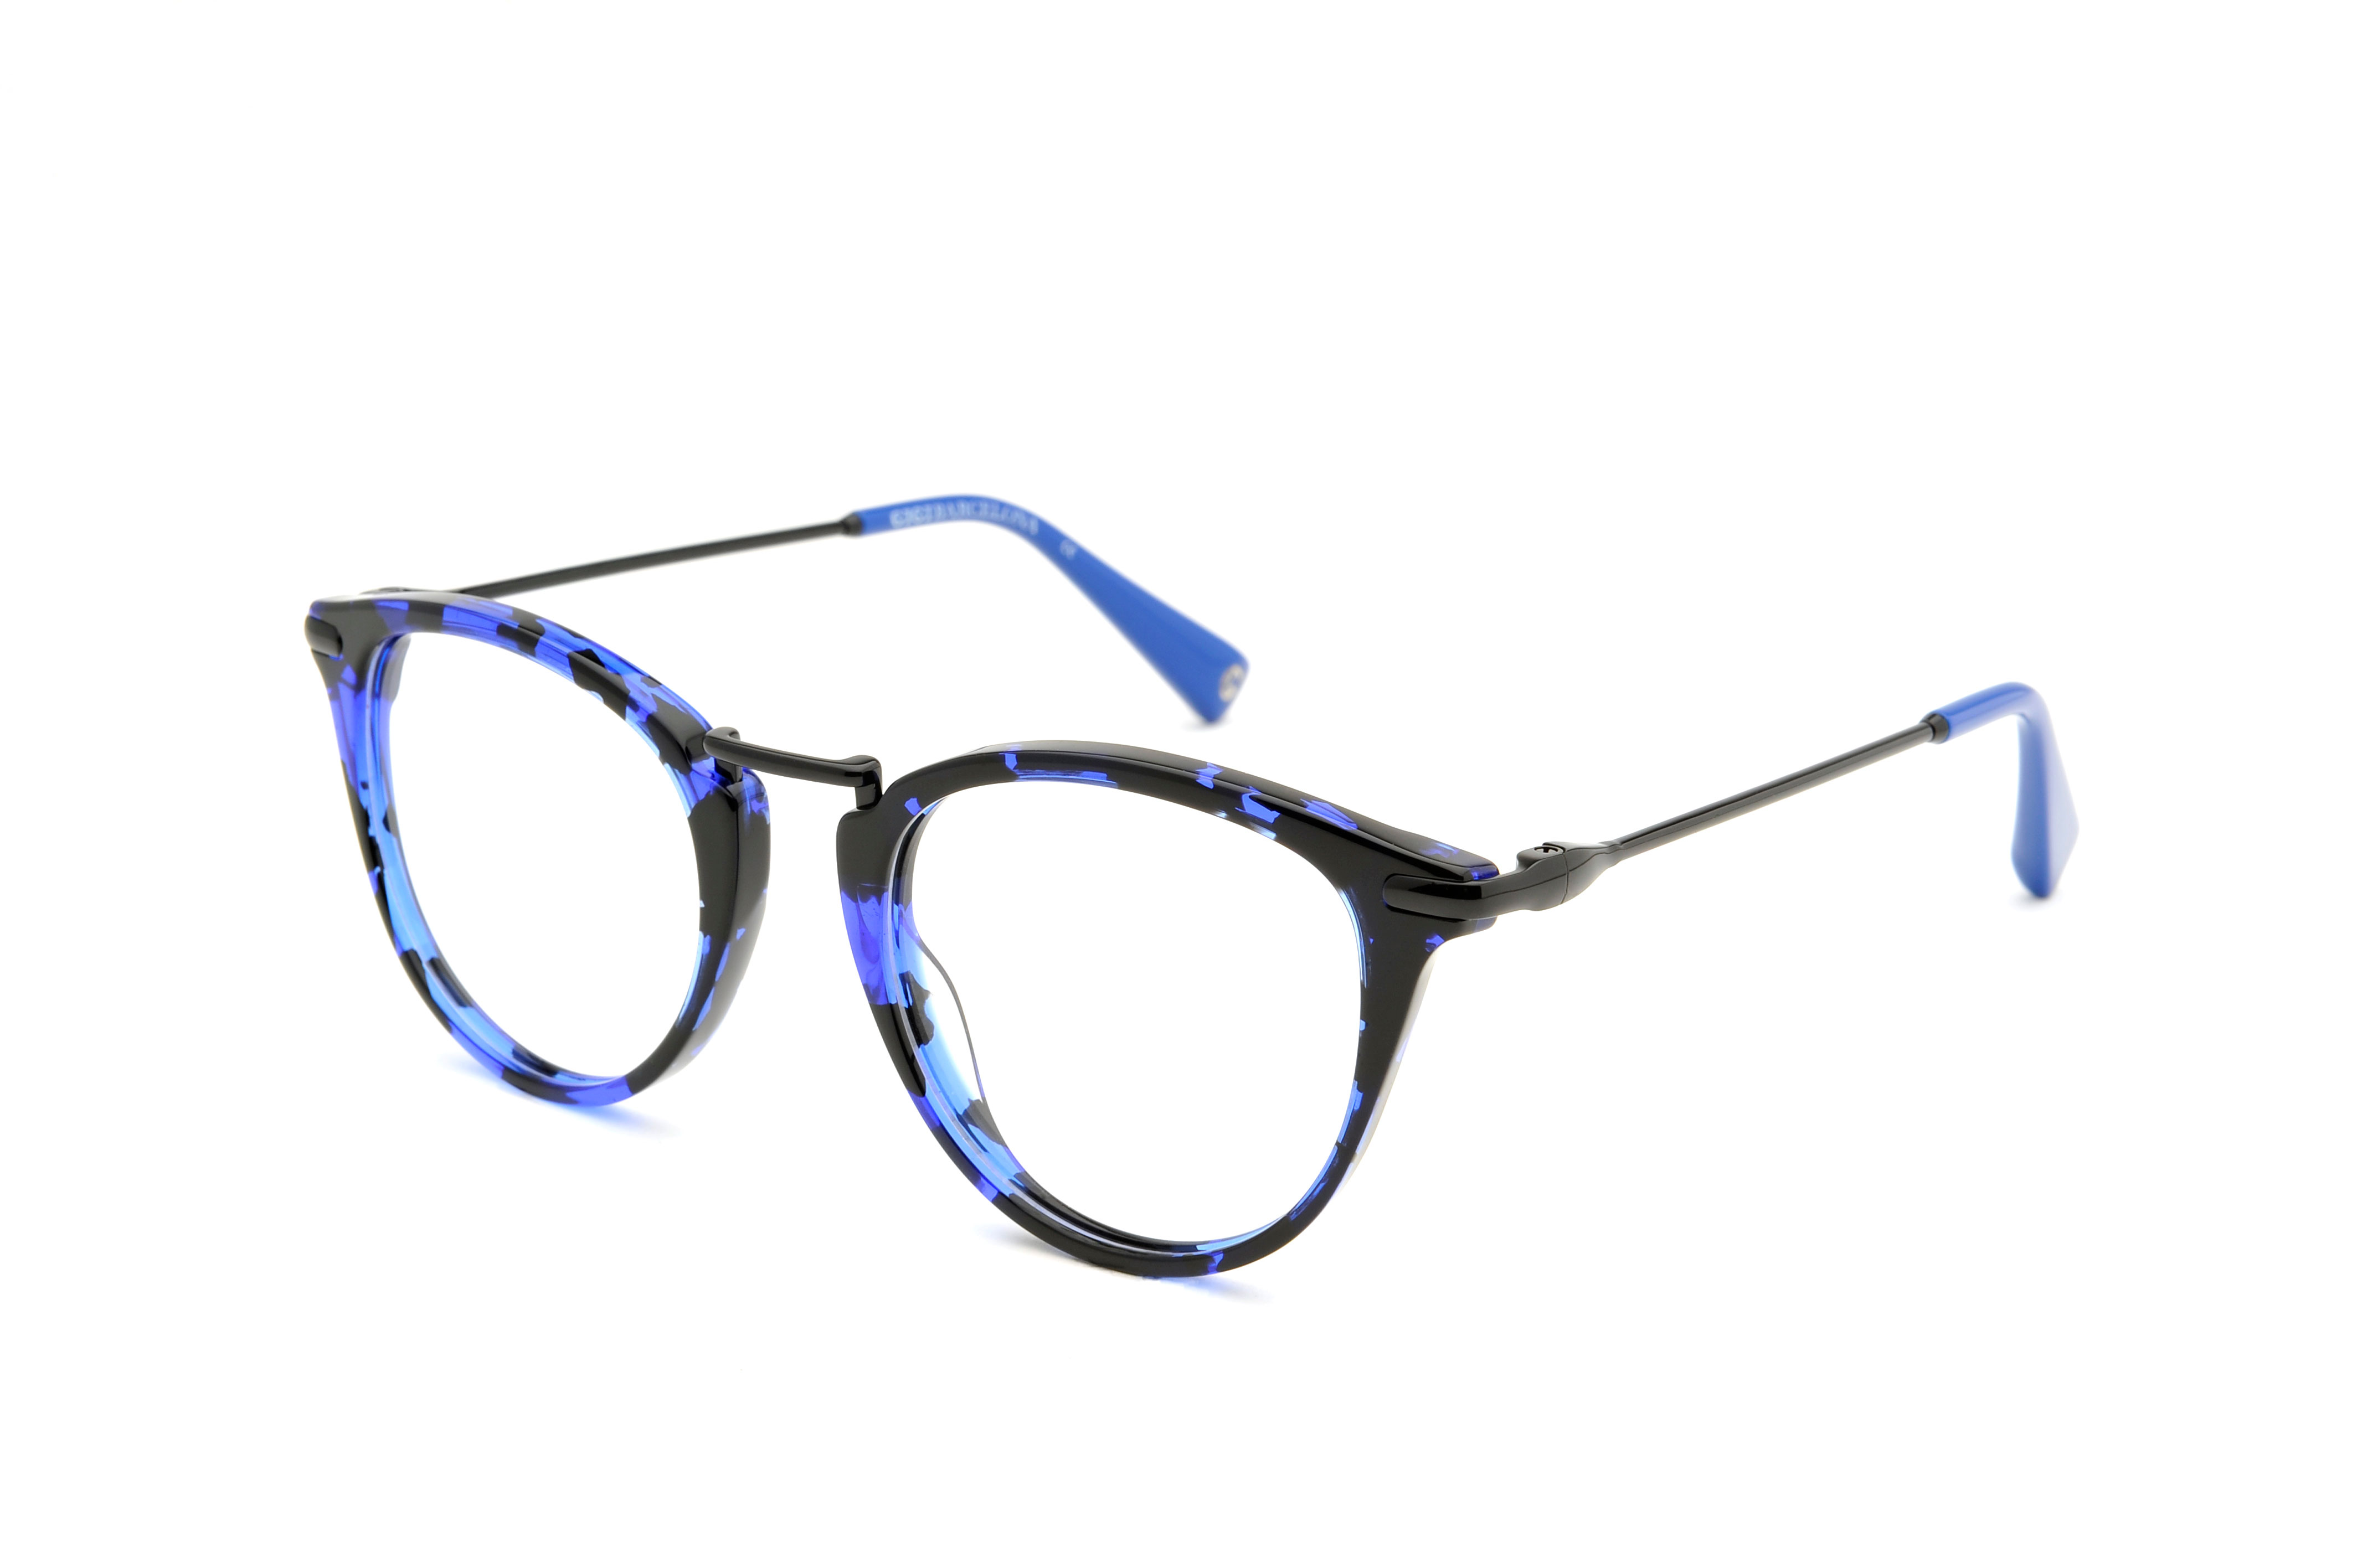 Jazz acetate/metal rounded blue sunglasses by GIGI Studios